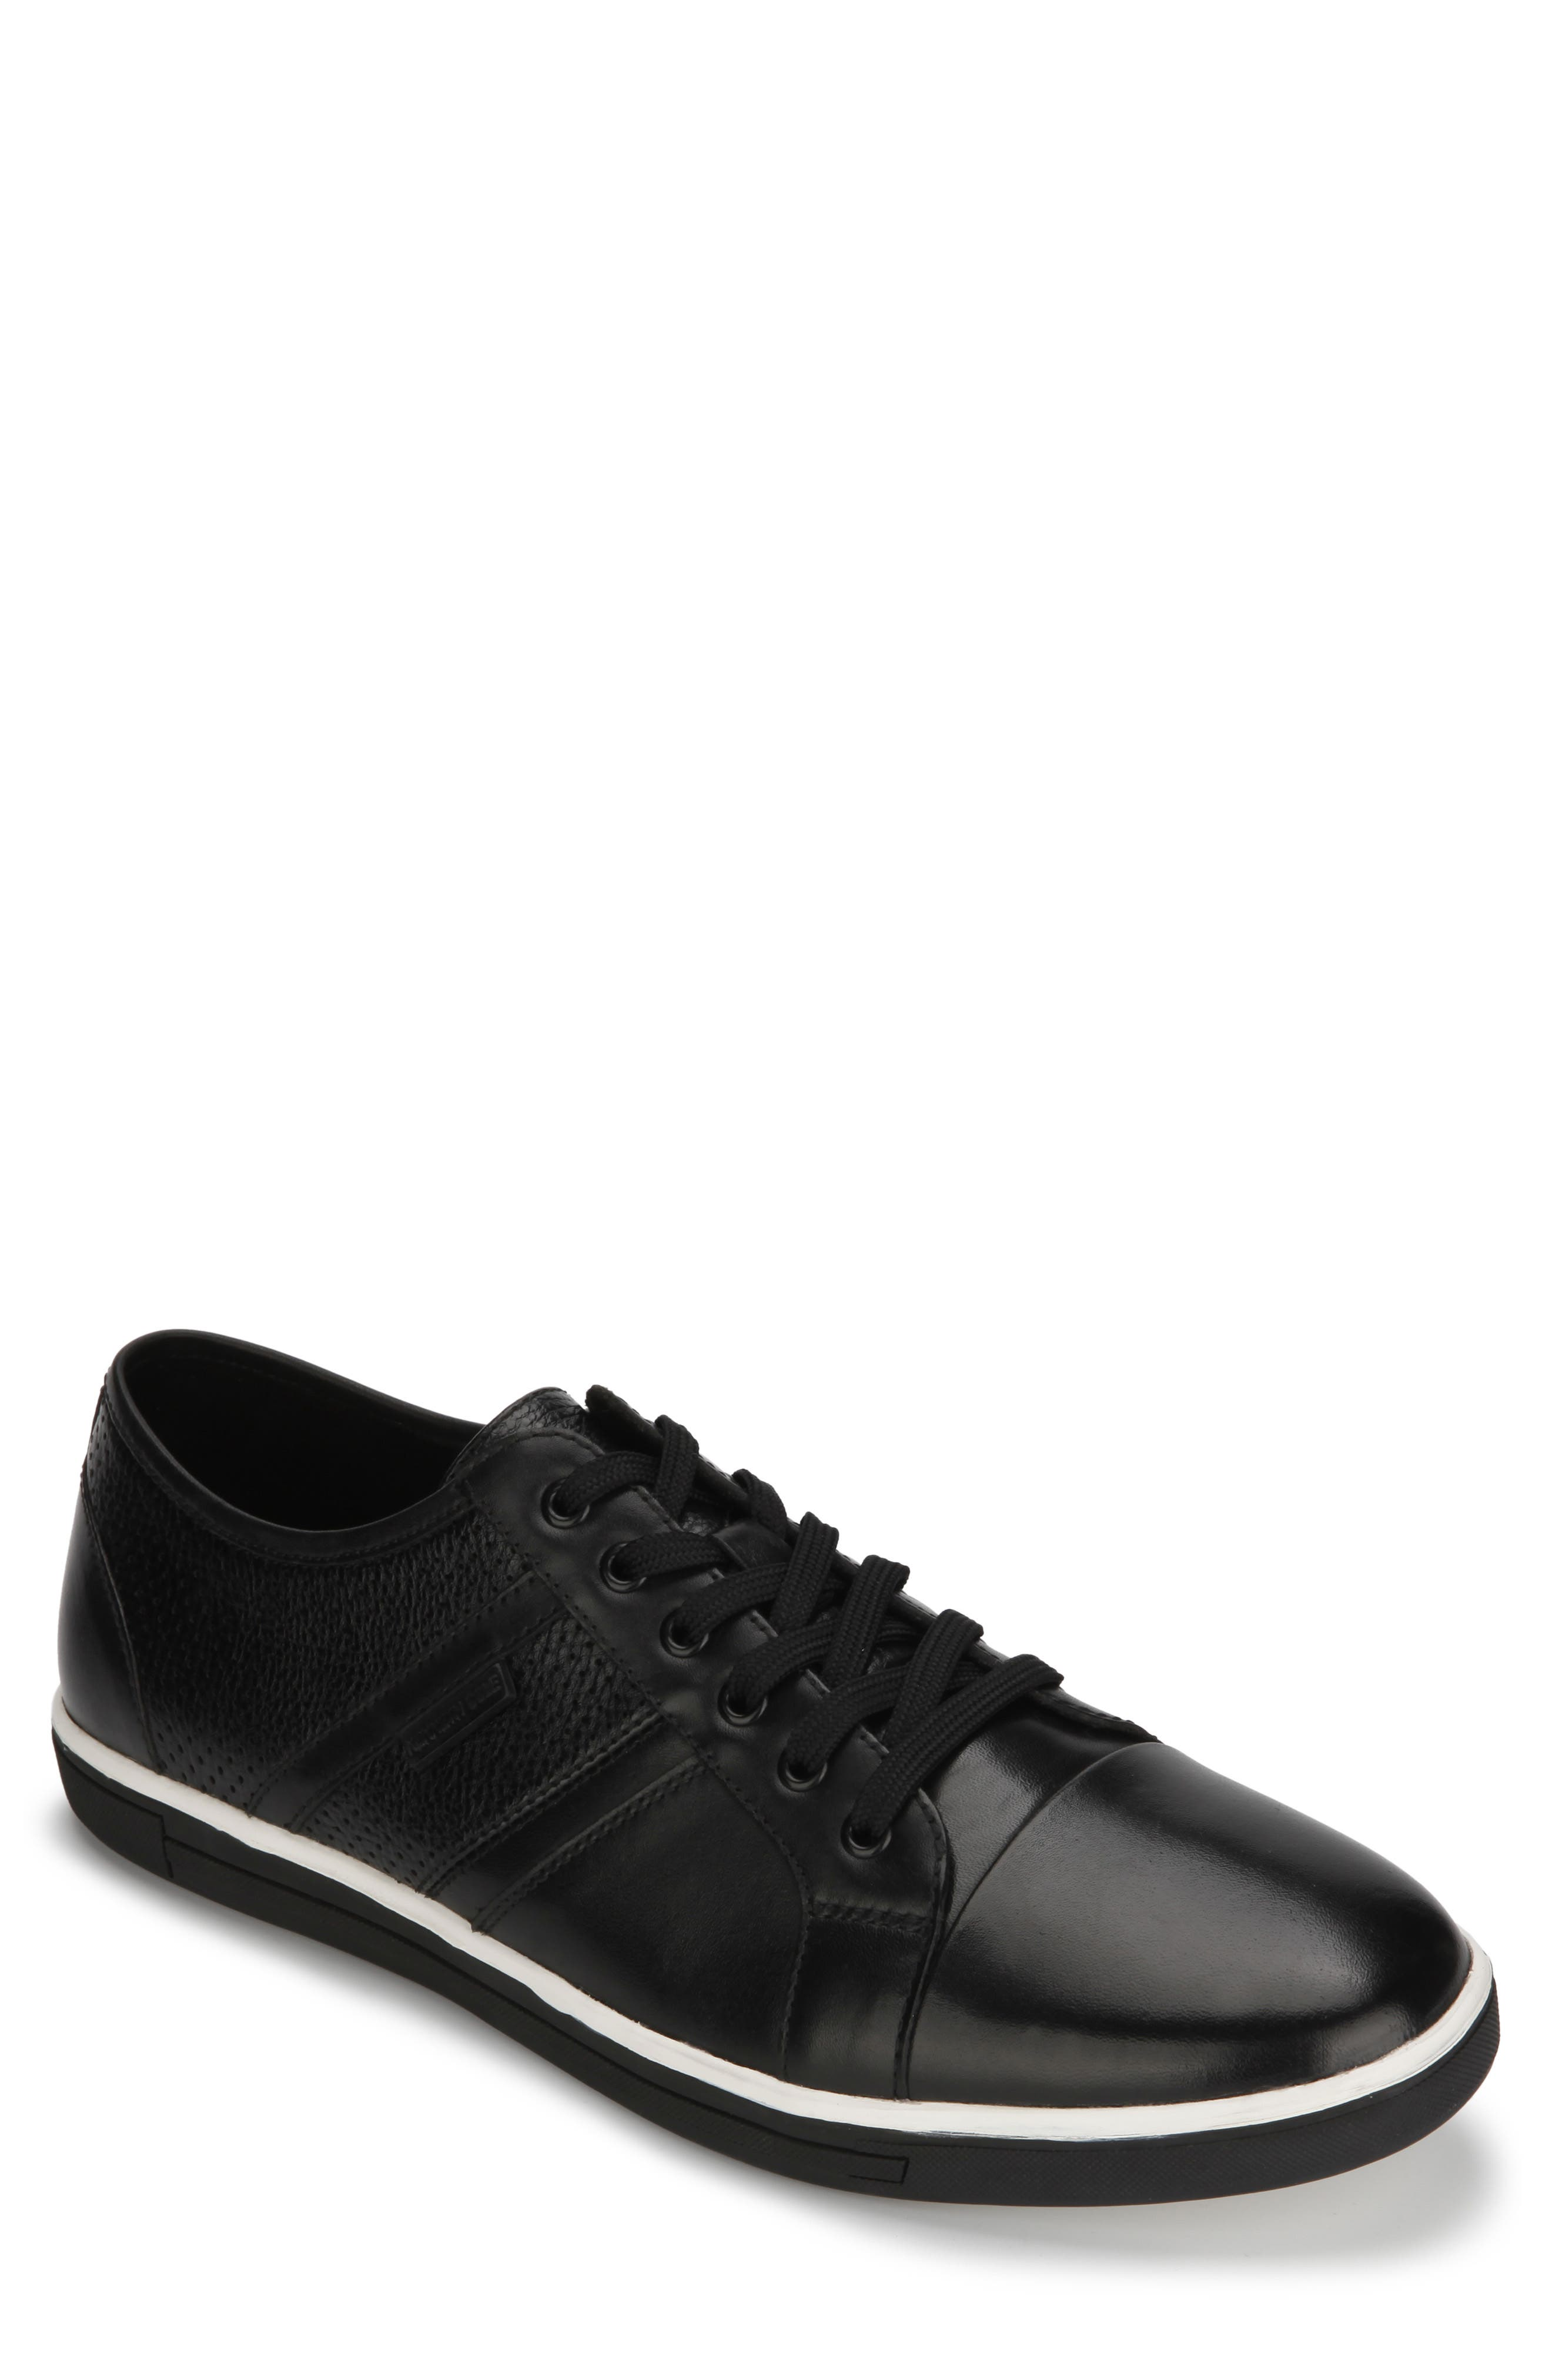 KENNETH COLE NEW YORK Initial Step Sneaker, Main, color, BLACK LEATHER